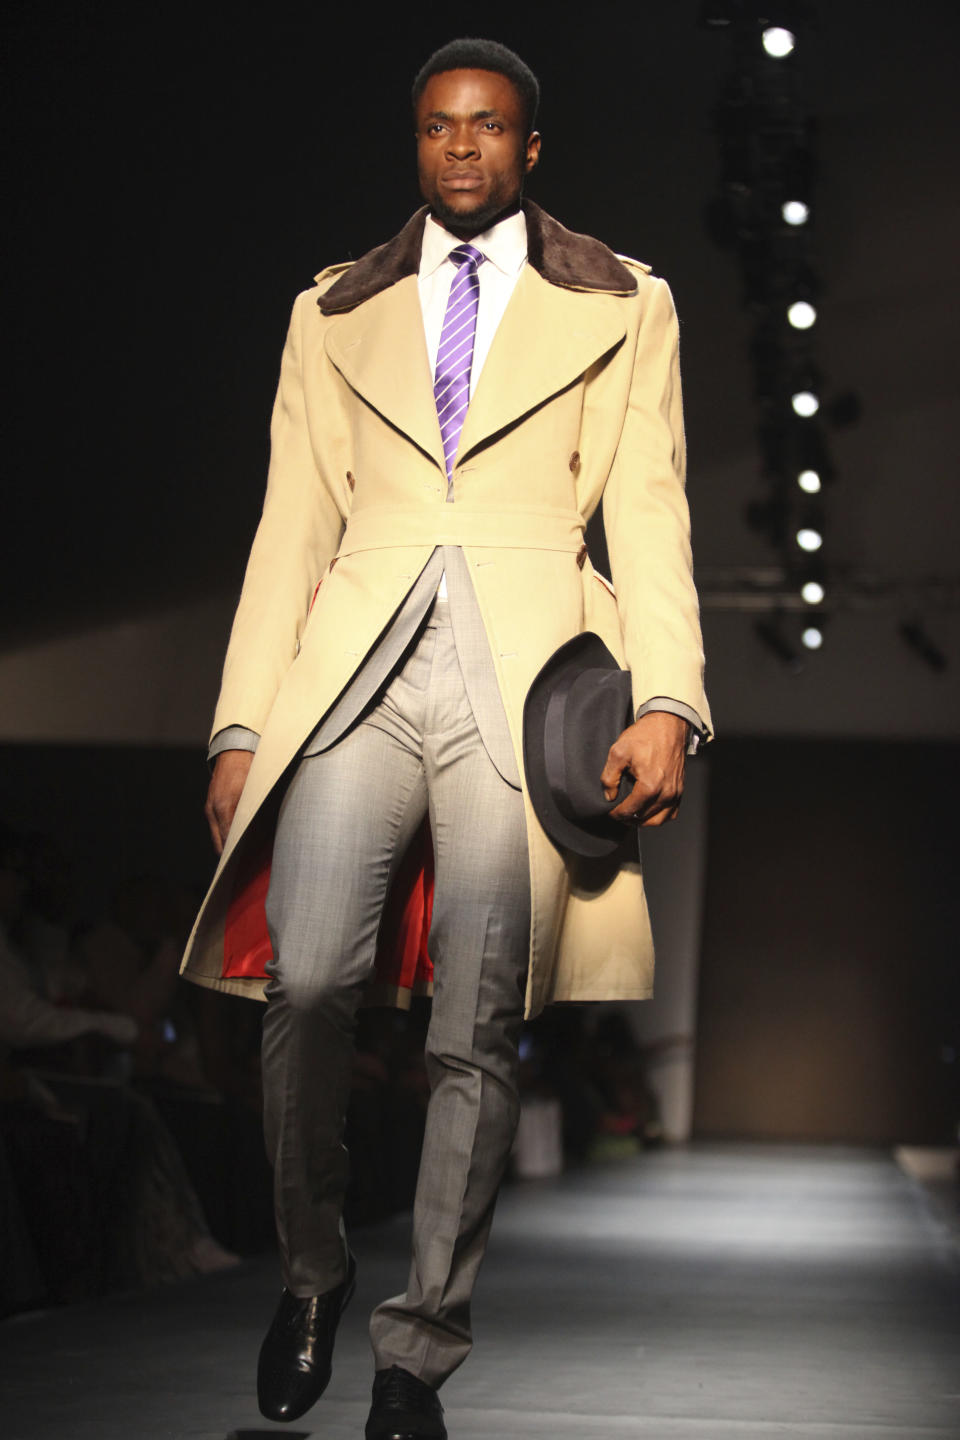 A model displays an outfit during the ARISE Fashion Week event in Lagos, Nigeria on Sunday, March 11, 2012. (AP Photos/Sunday Alamba)